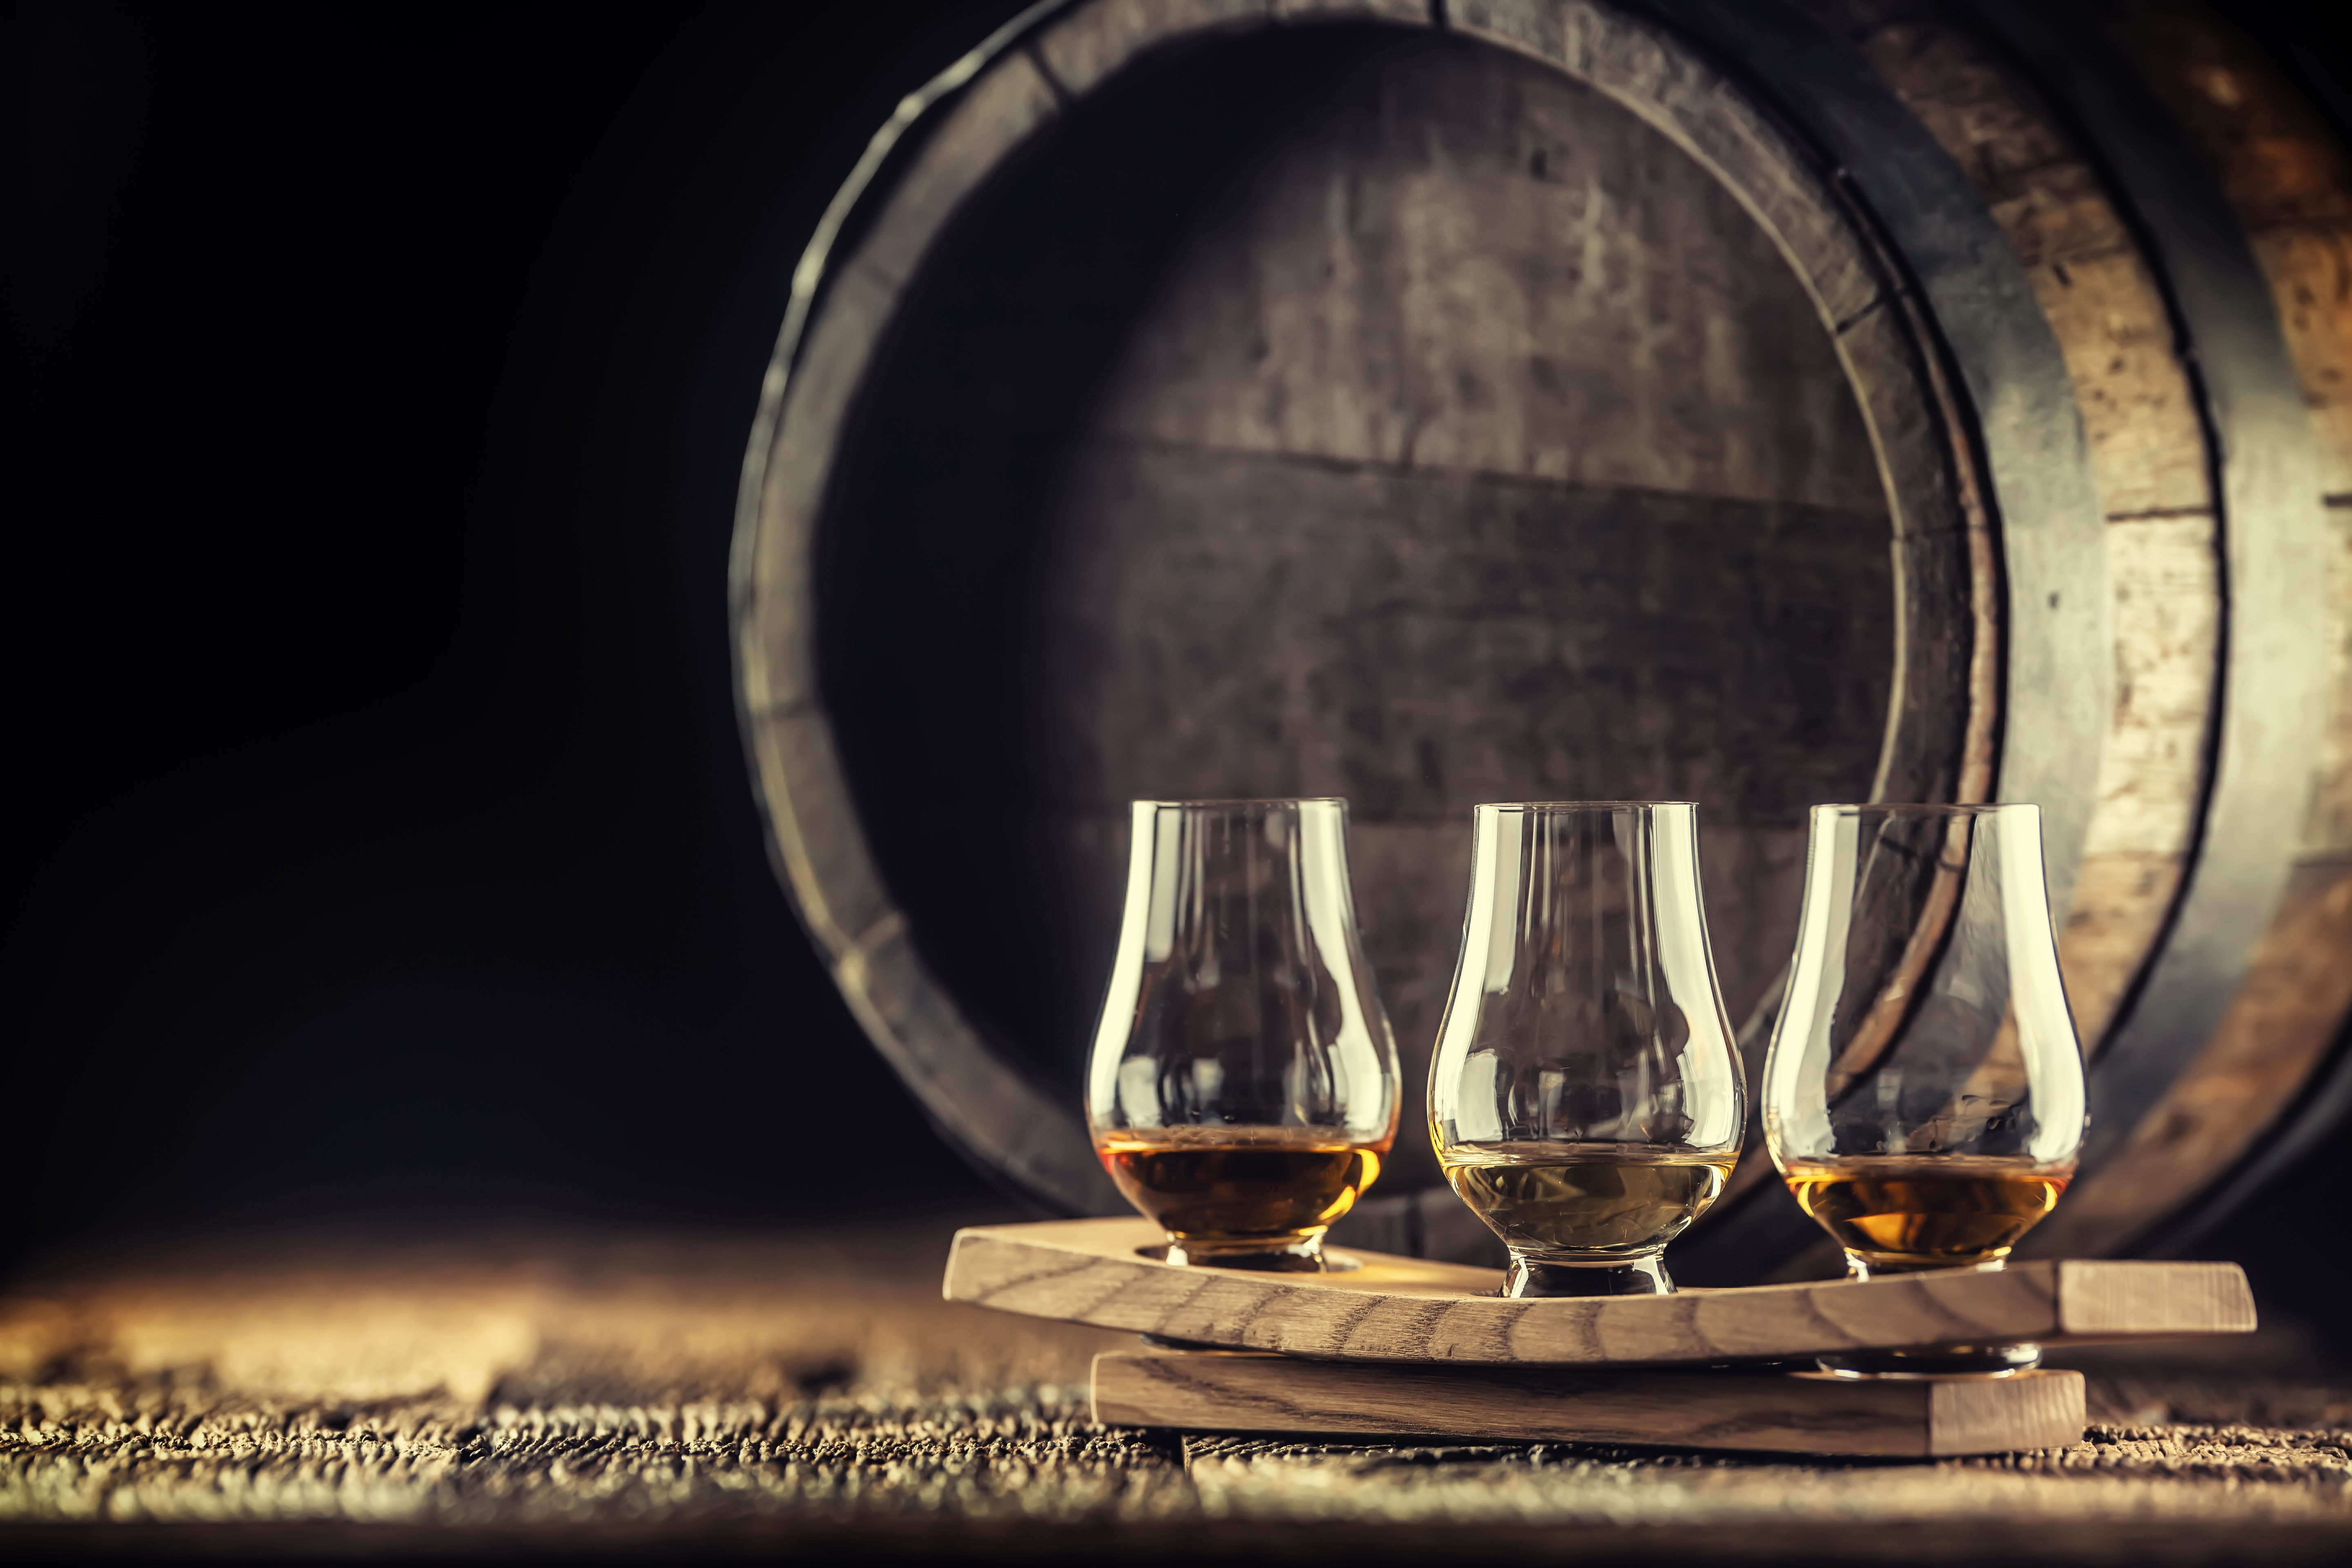 UK's James B. Beam Institute for Kentucky Spirits inks powerful partnership with Scotch Whisky Research Institute